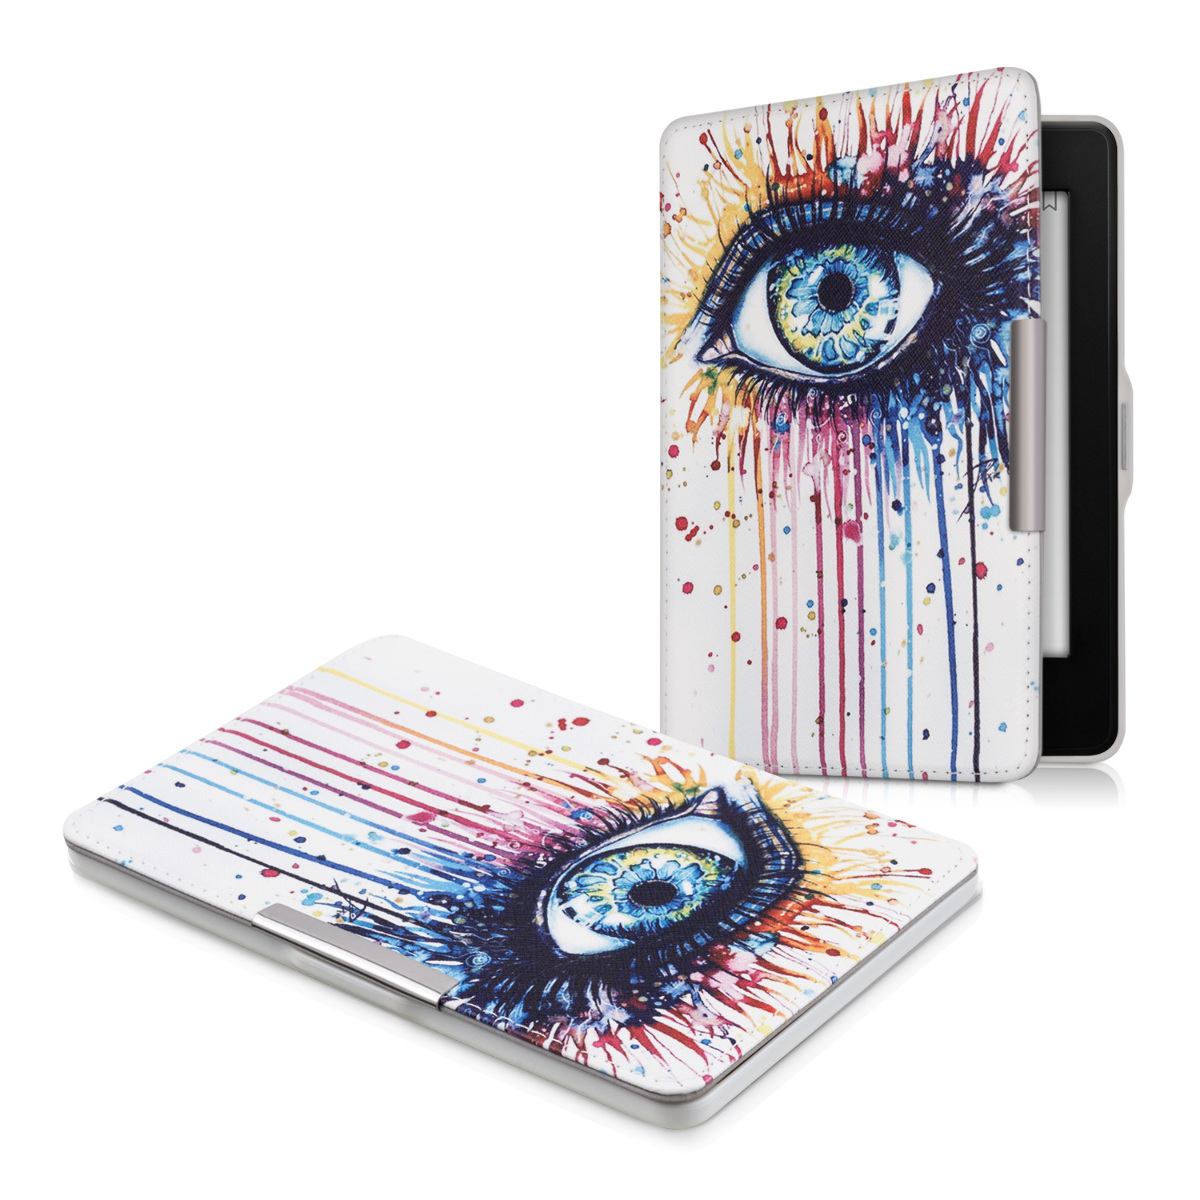 Kwmobile Leather Flip Cover For Amazon Kindle Paperwhite